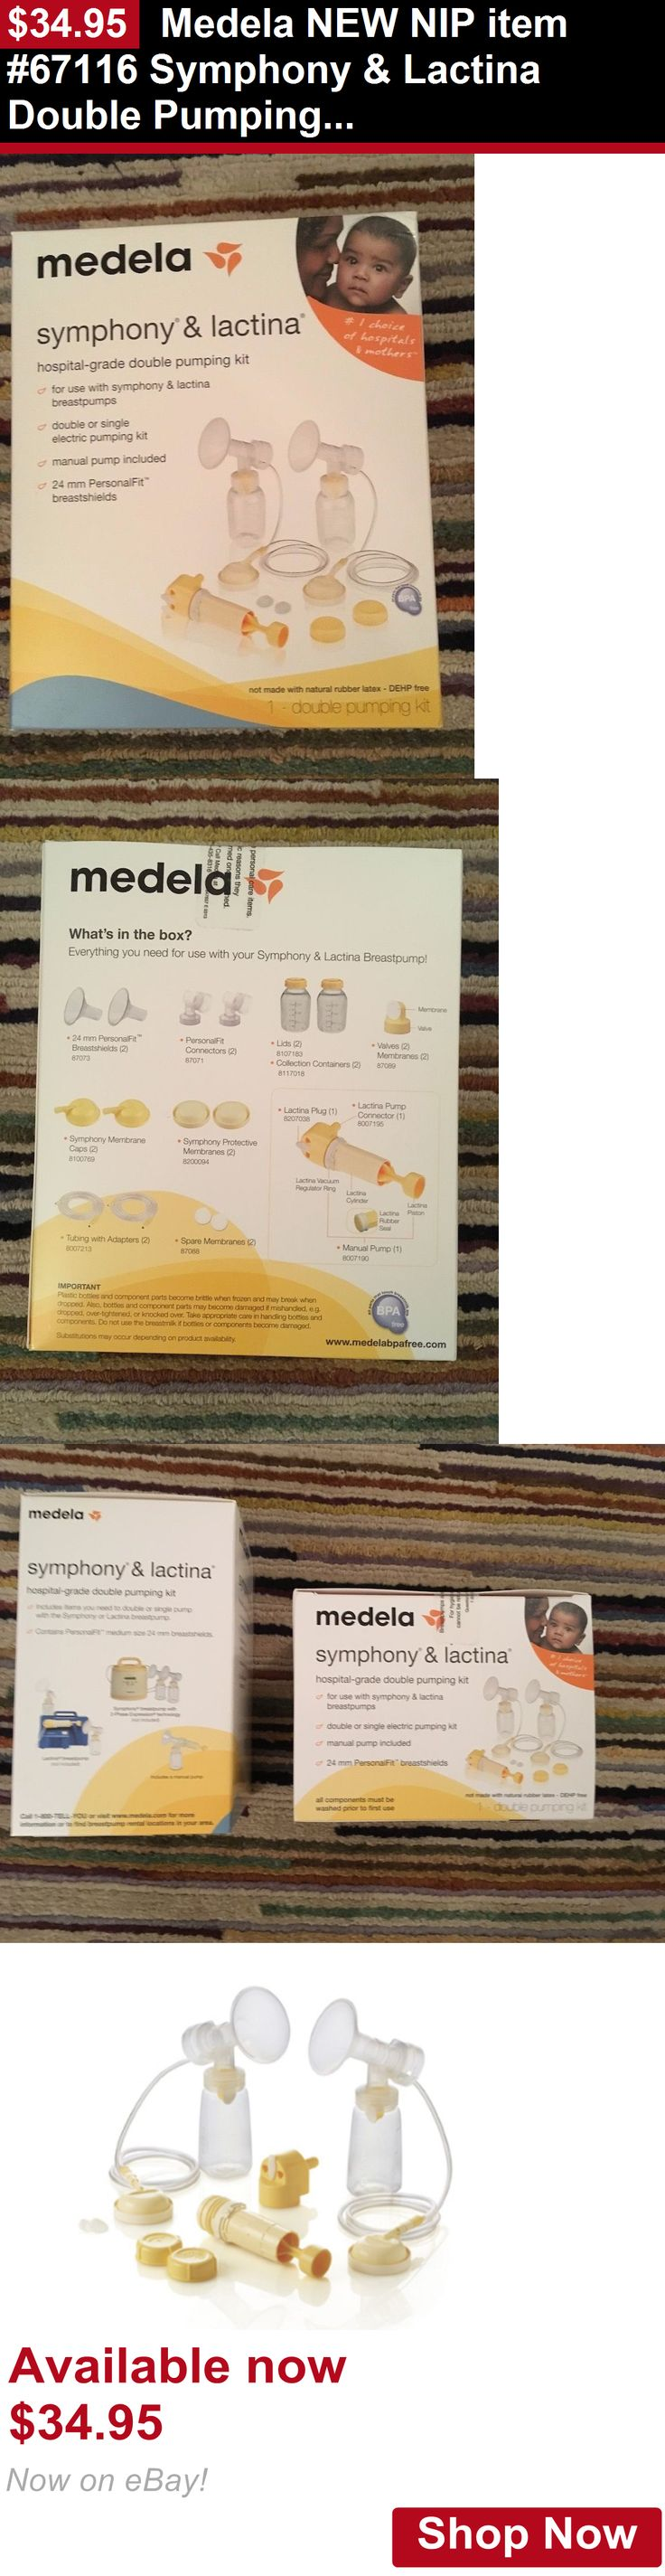 Breastpumps: Medela New Nip Item #67116 Symphony And Lactina Double Pumping Parts Kit Set BUY IT NOW ONLY: $34.95